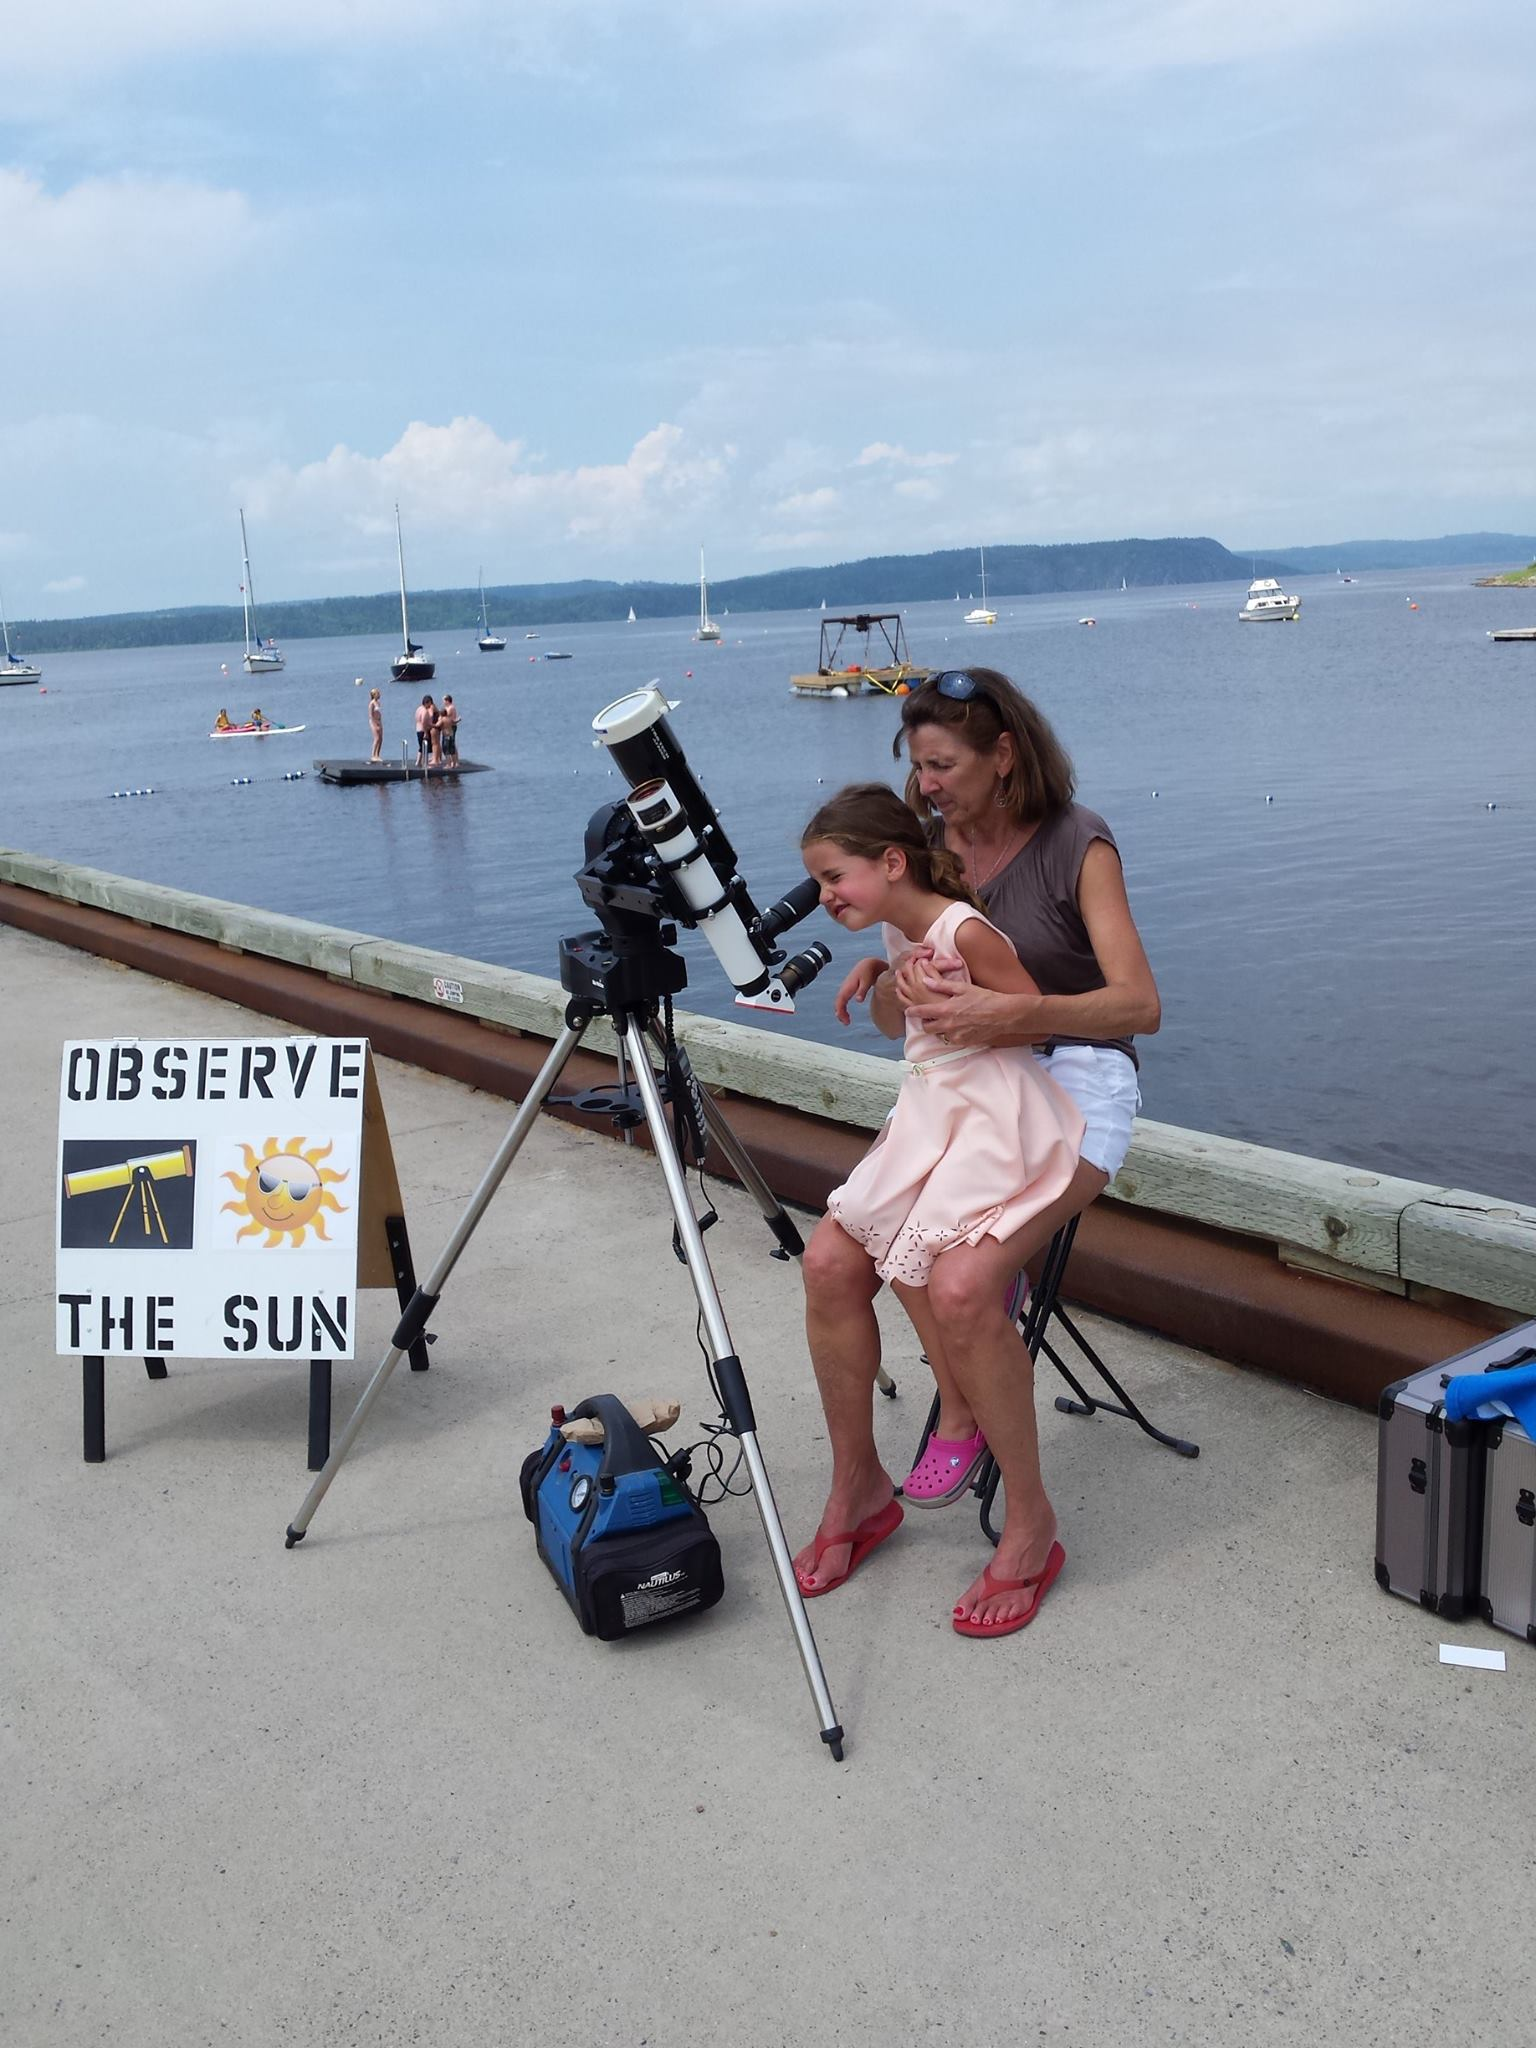 Viewing the Sun safely through a special filteredl telescope.